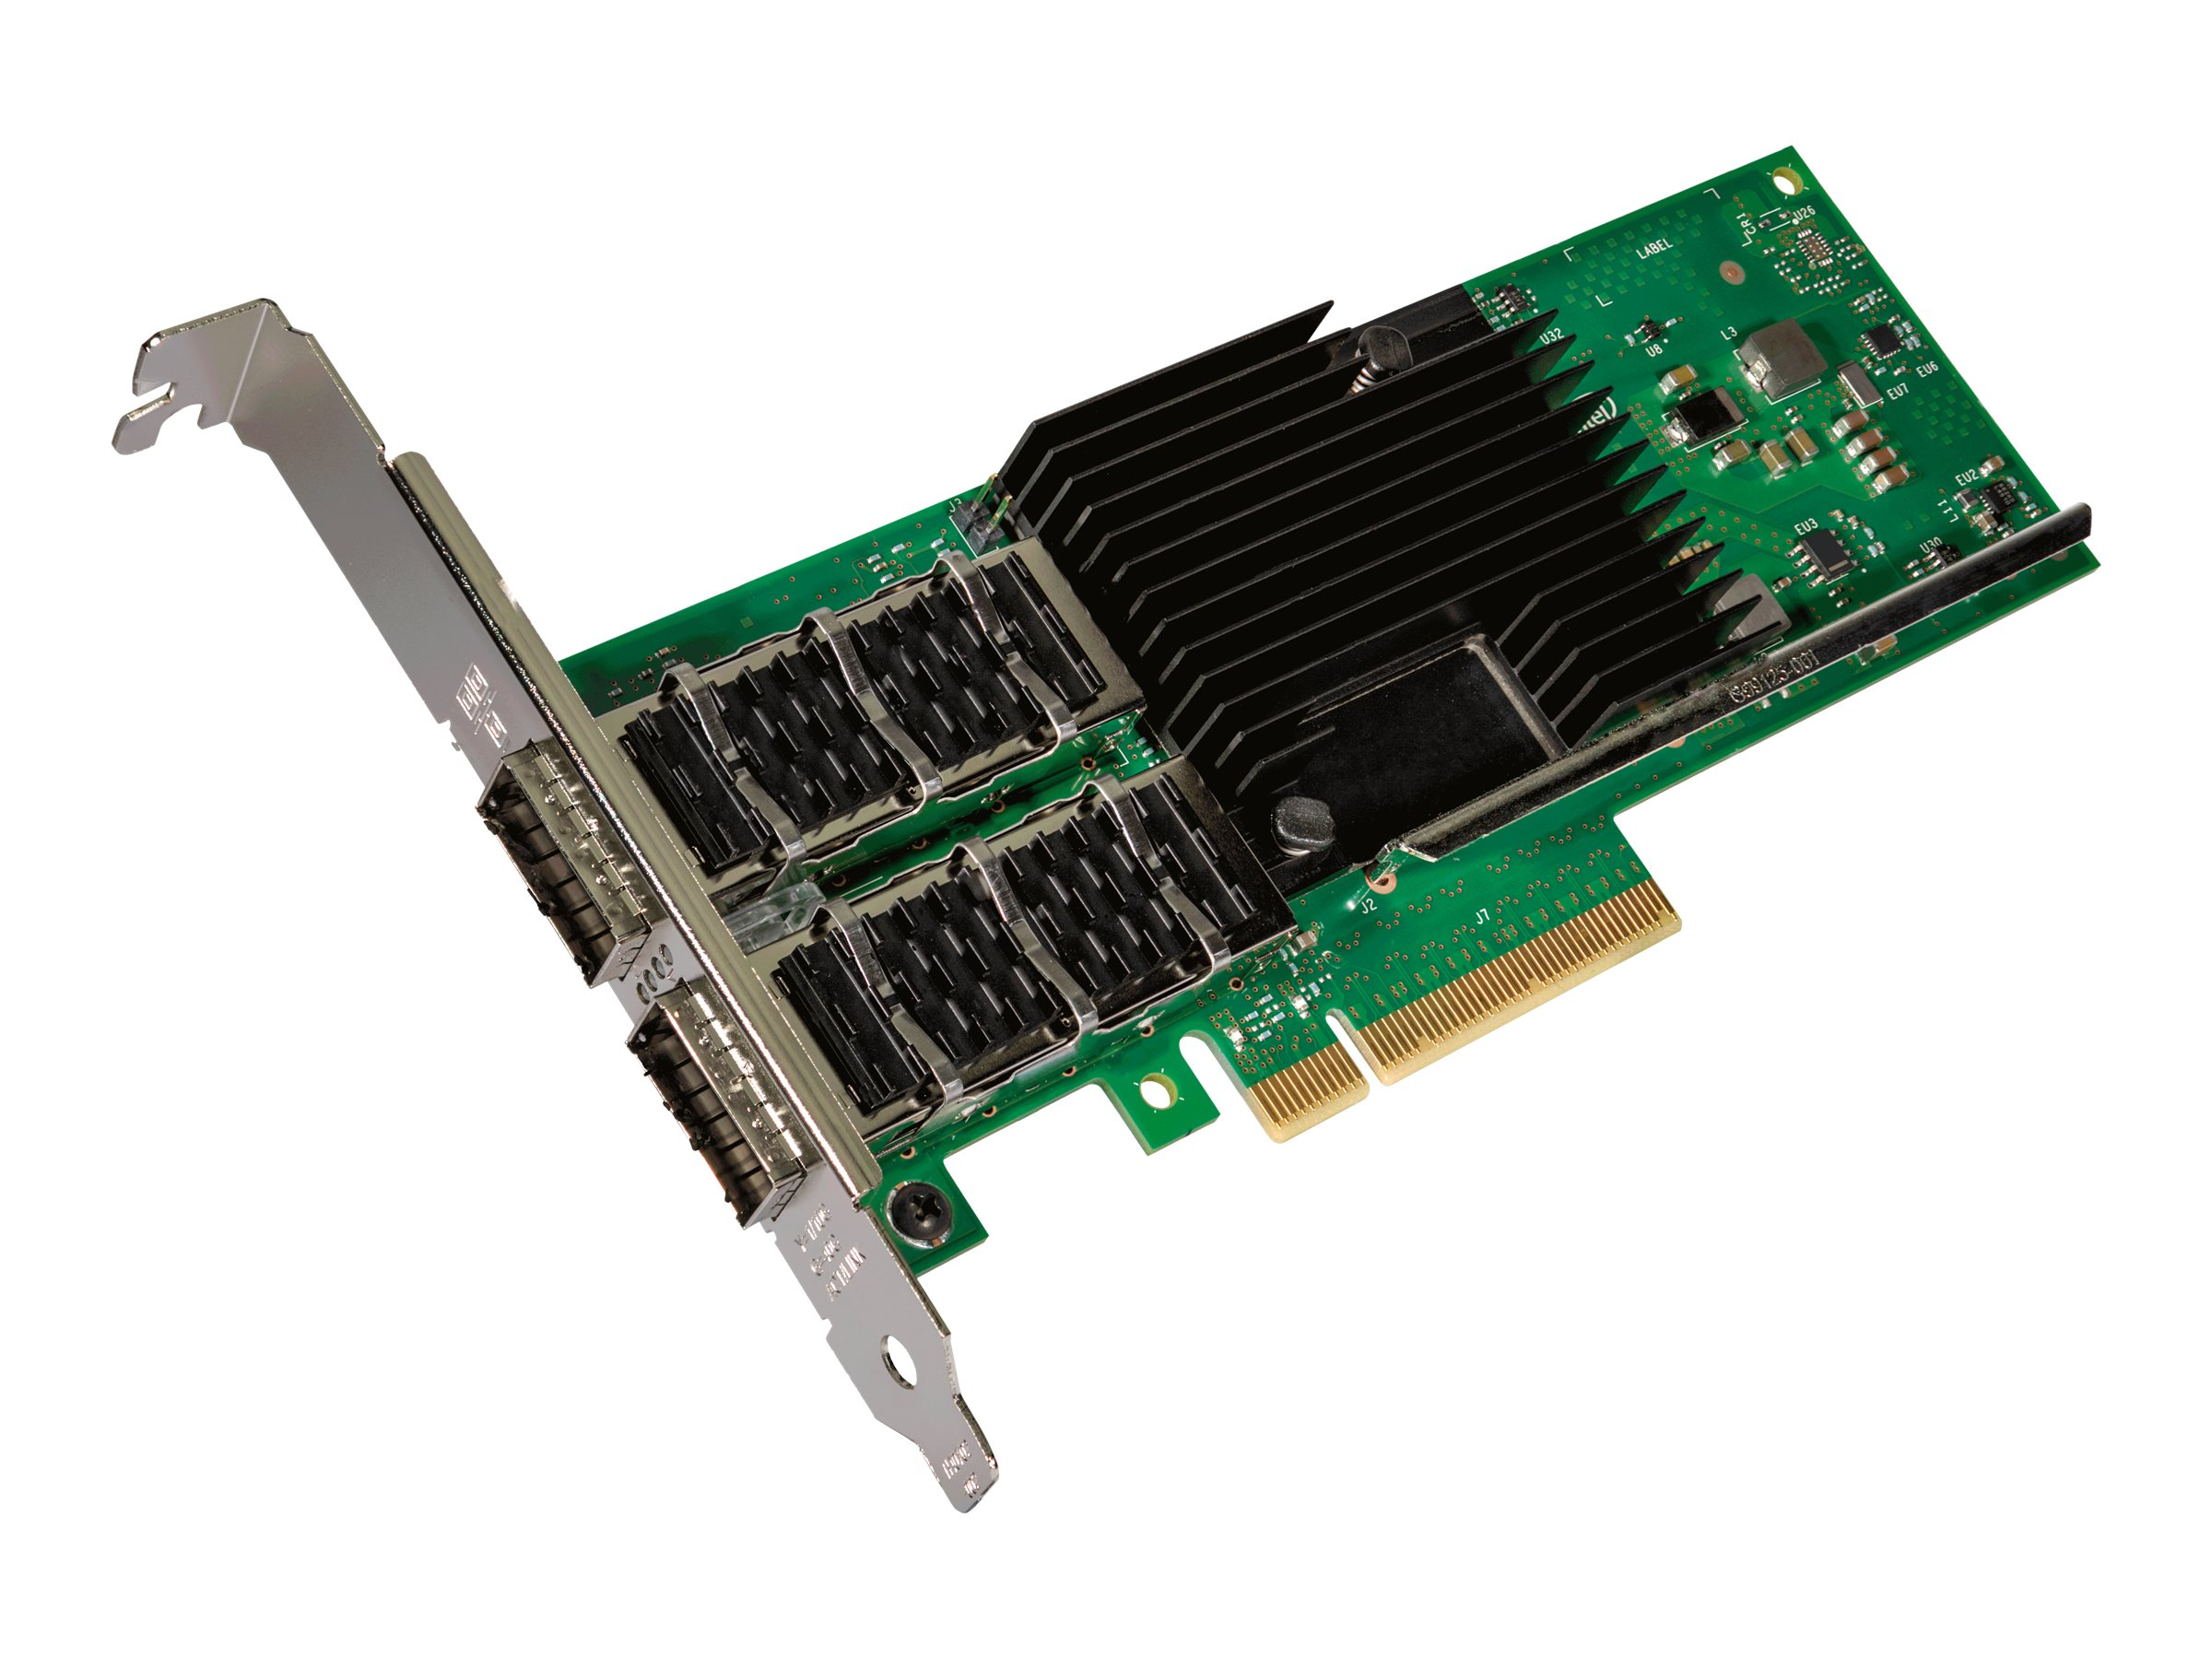 Intel Ethernet Converged Network Adapter, XL710QDA2, 17758774, Network Adapters & NICs